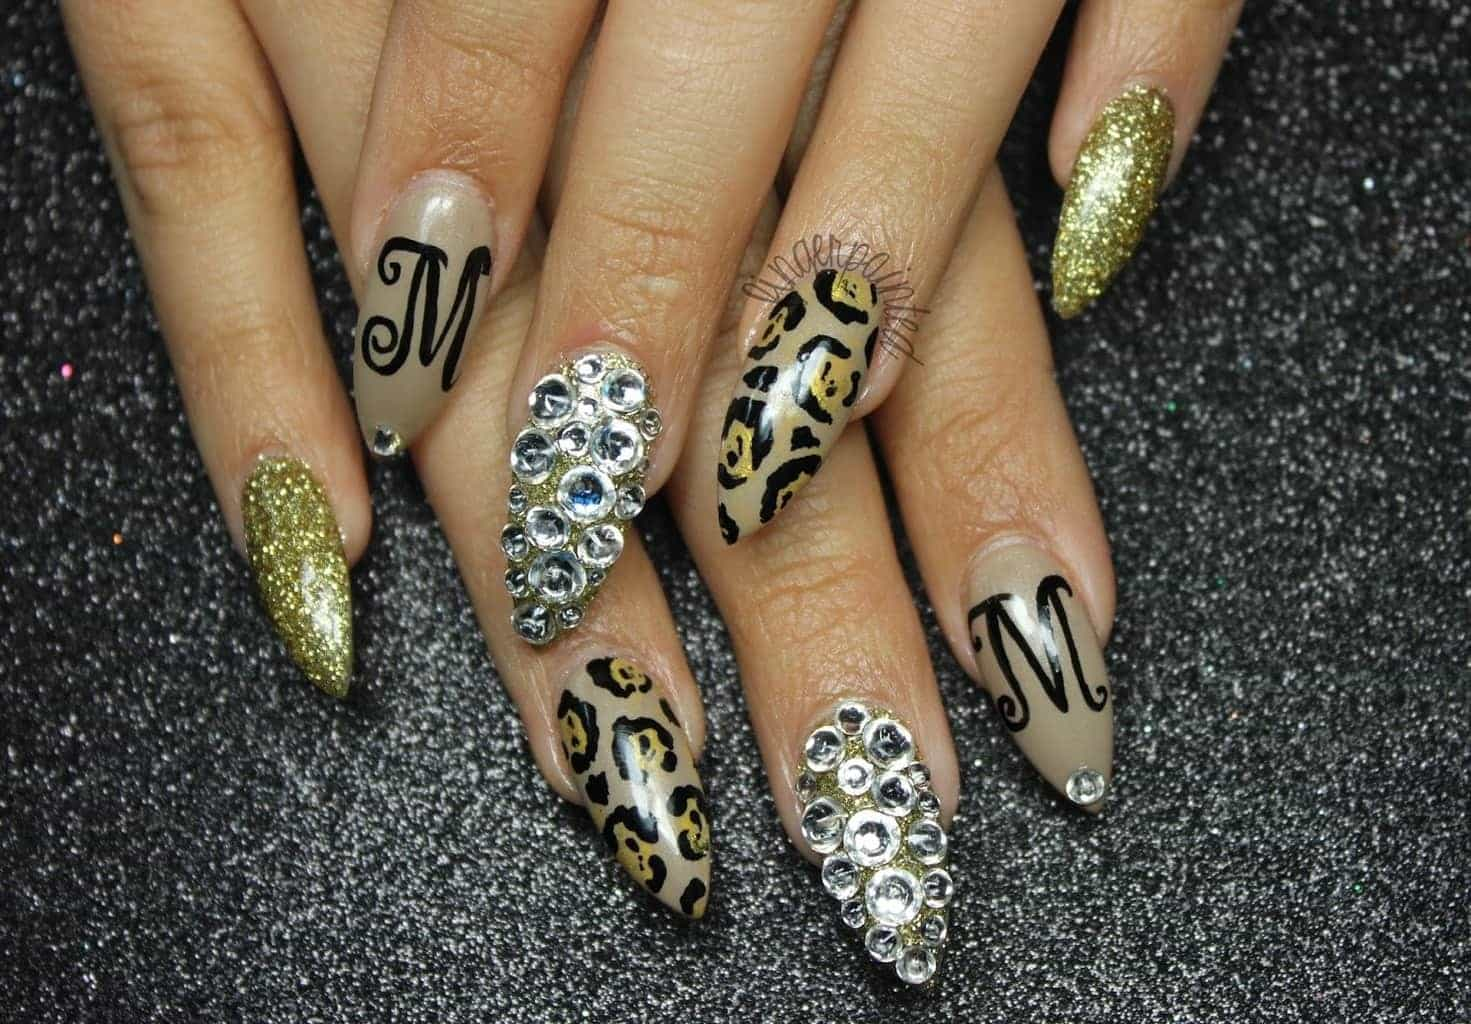 Cheetah and Leopard Nail Designs